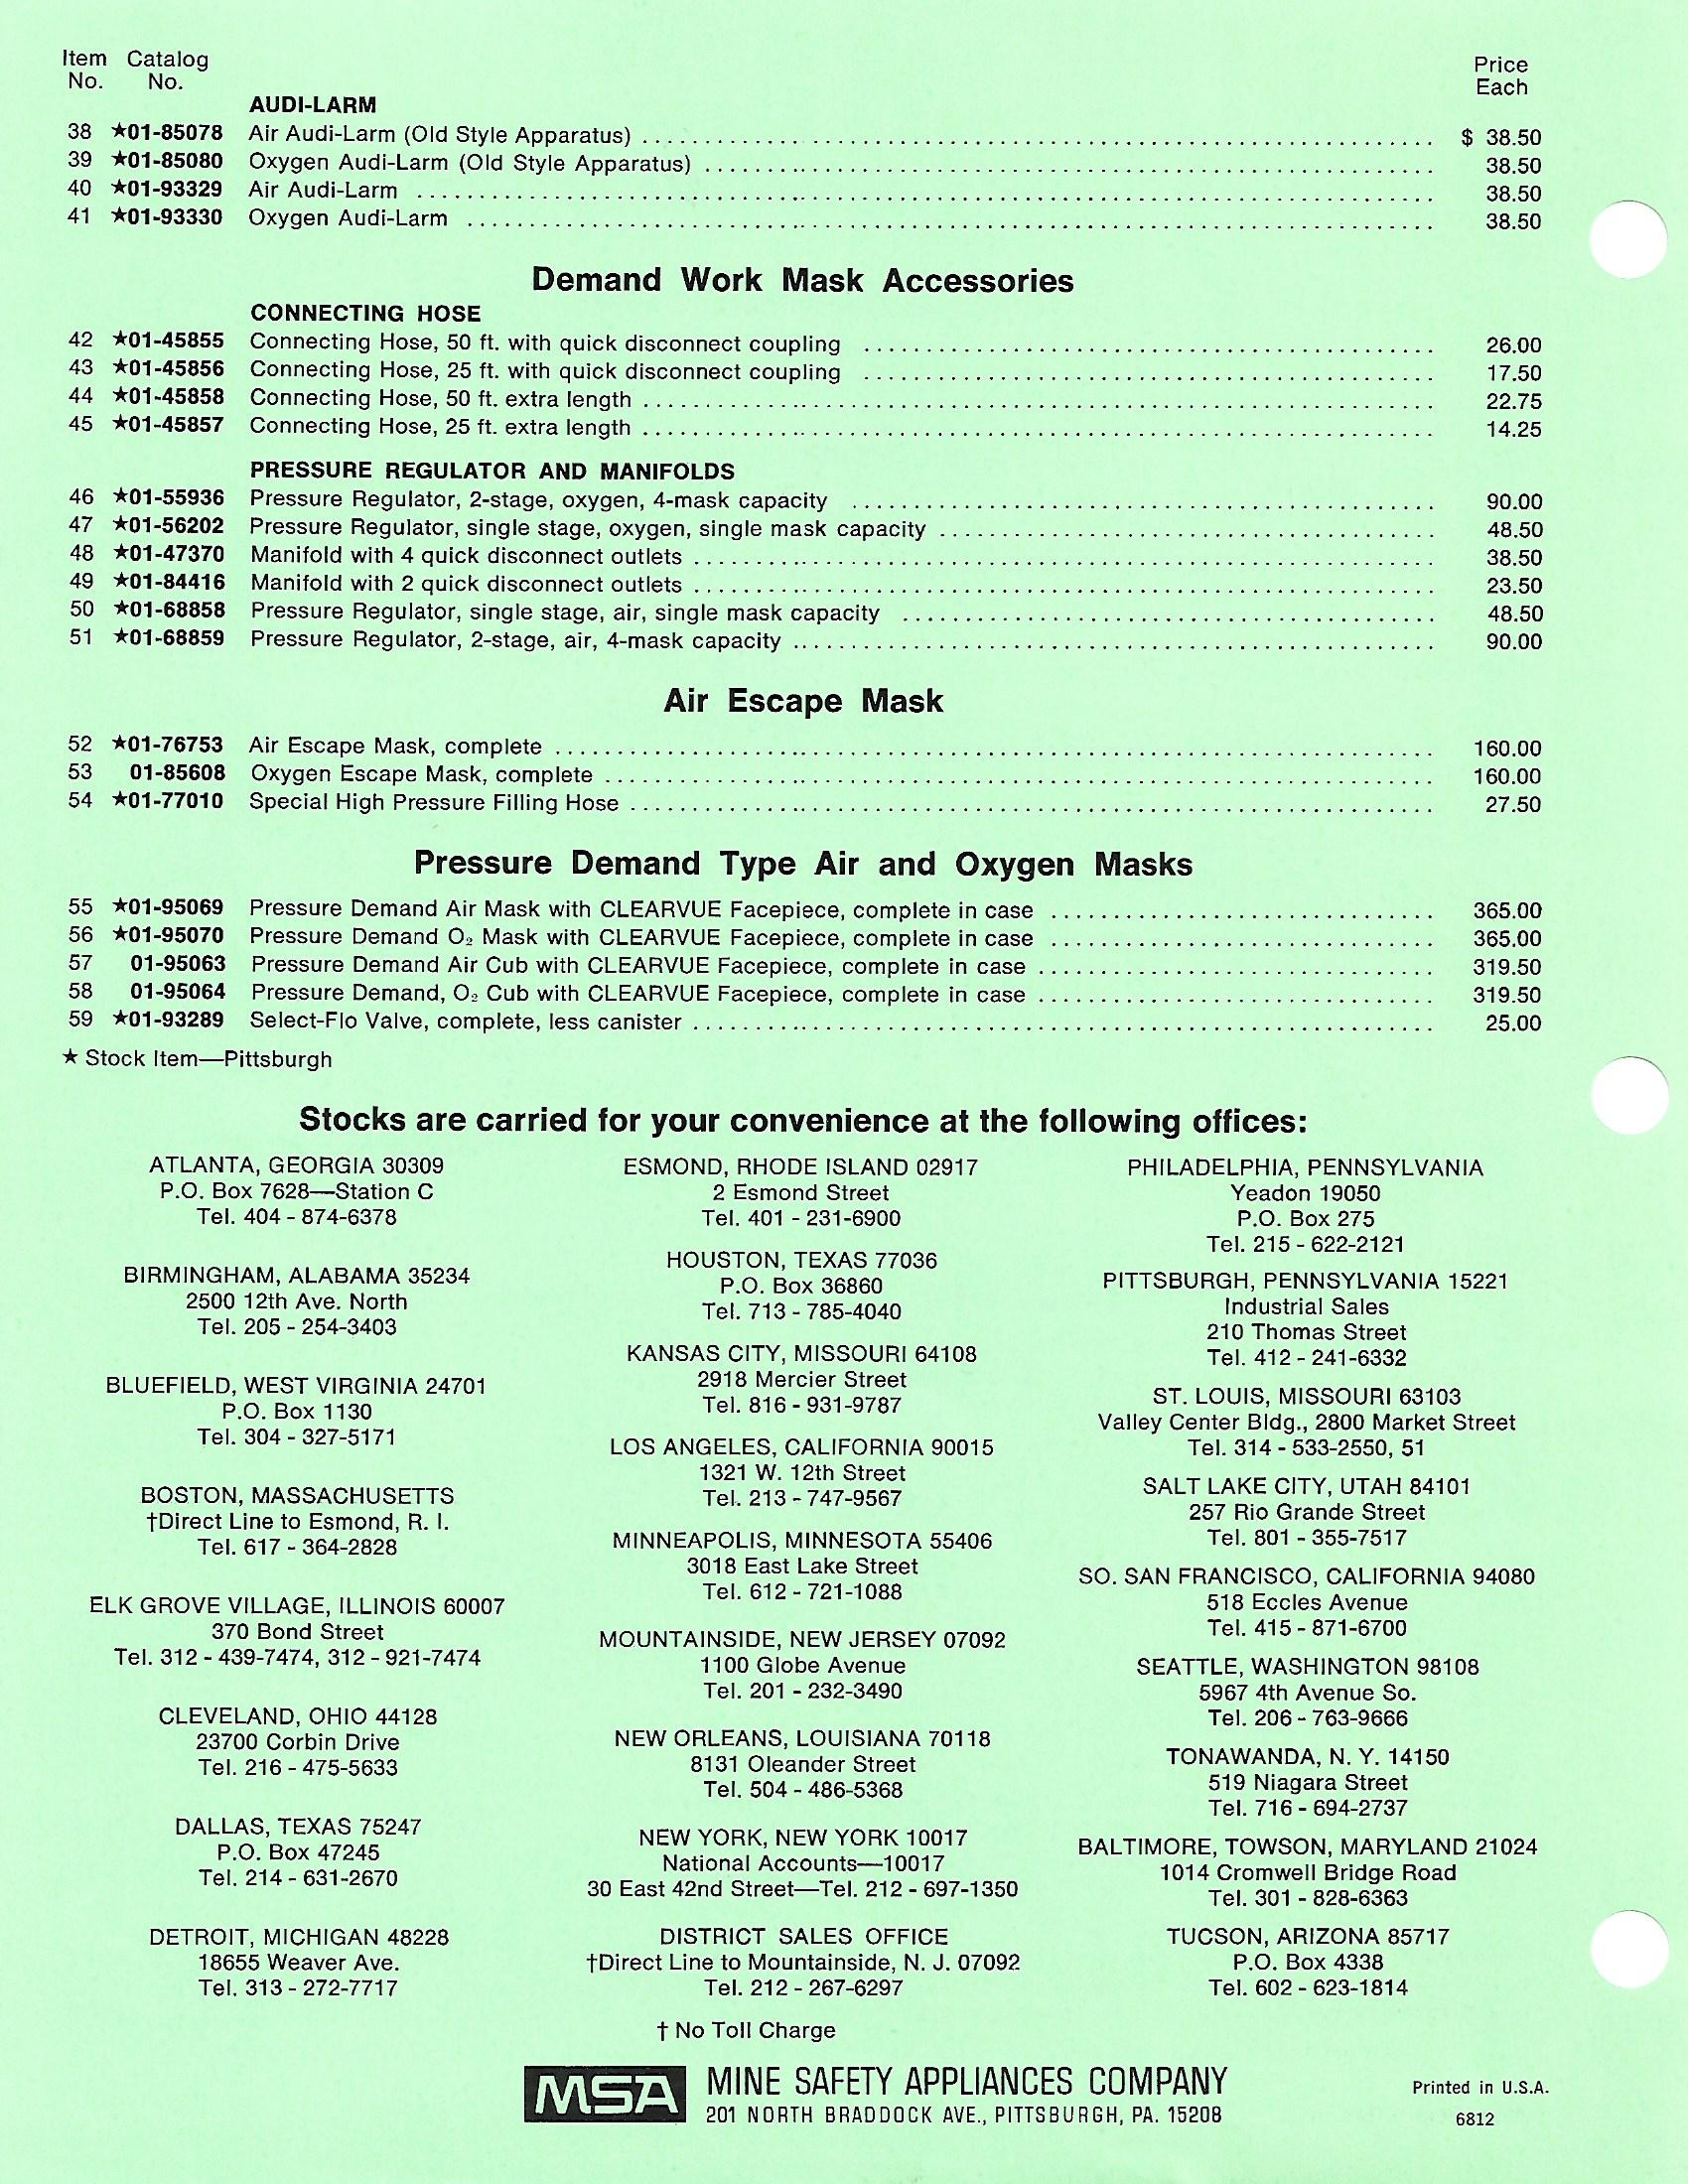 MSA Pricing List 19680002 – Star City Fire and EMS